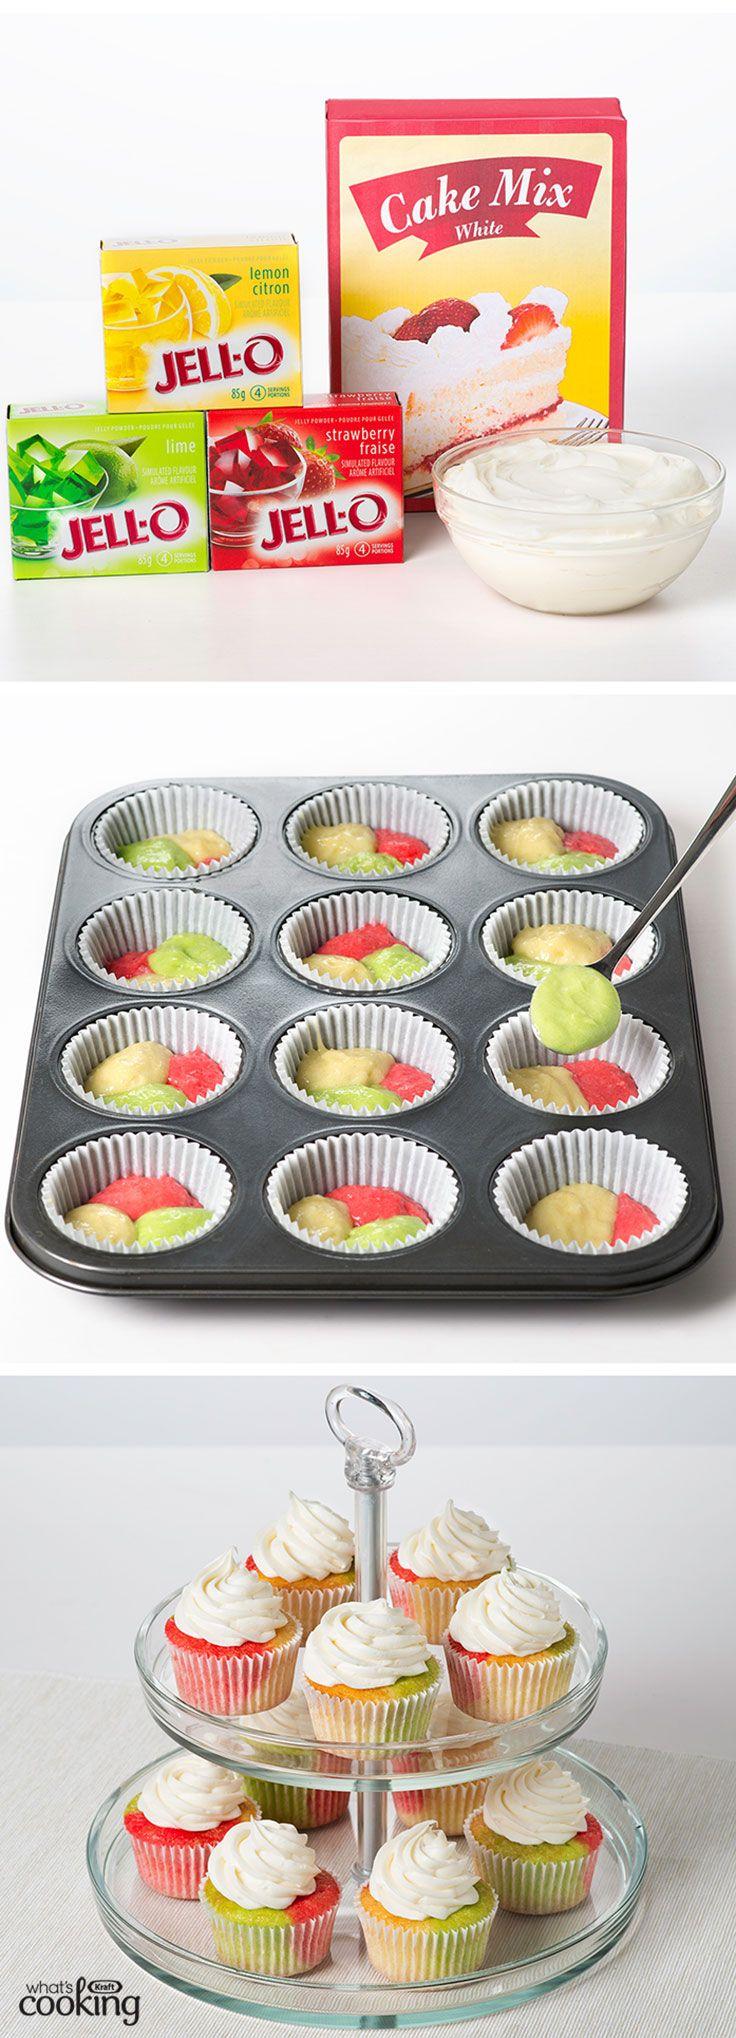 Tie-dye Fruity Cupcakes #recipe - Super cool and super tasty, these easy cupcakes are a hit with kids and adults alike. Tap or click photo for recipe.